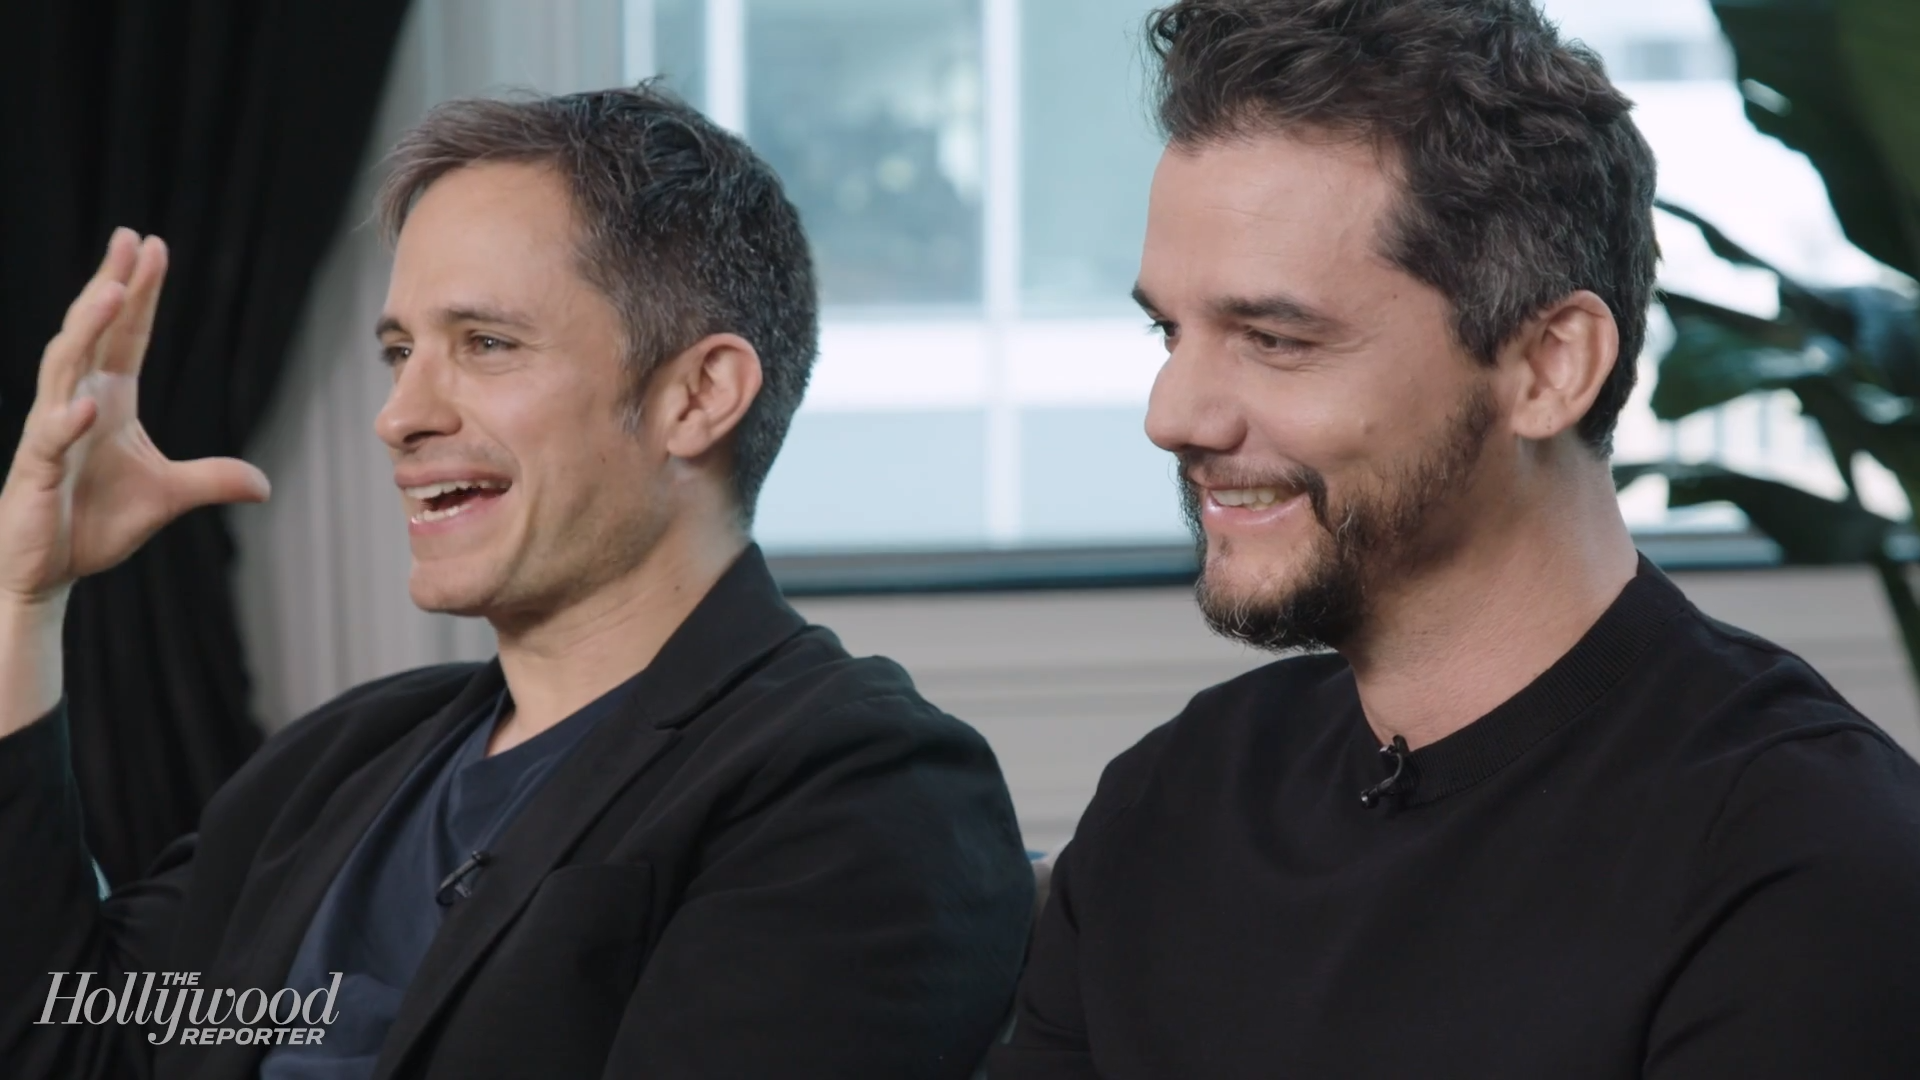 Édgar Ramírez, Gael García Bernal, Wagner Moura on Director Assayas and Working with Cuban Accents in 'Wasp Network' | TIFF 2019